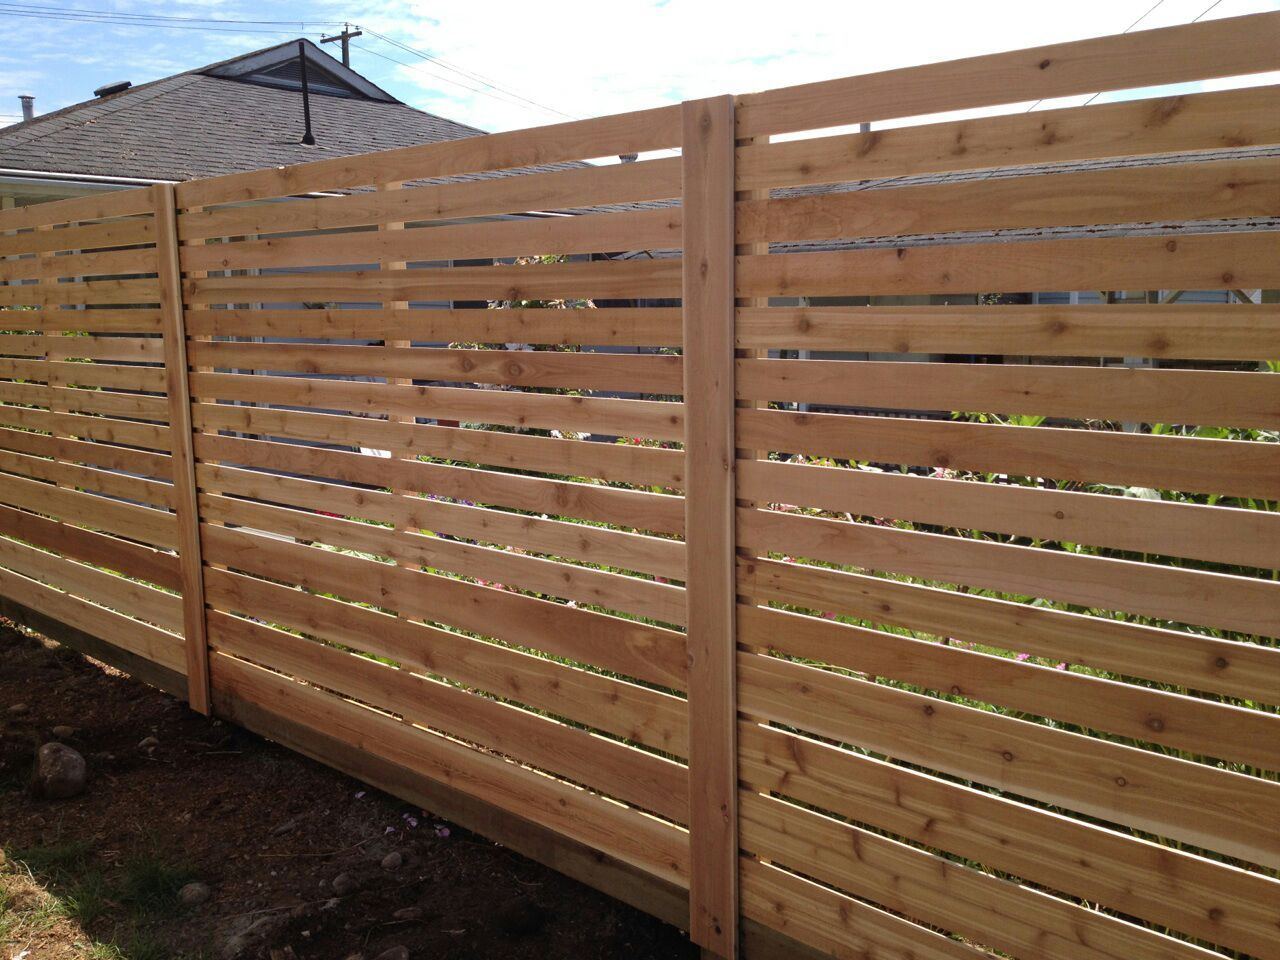 New Horizontal Fence Panel Sold By Home Depot Home Depot New